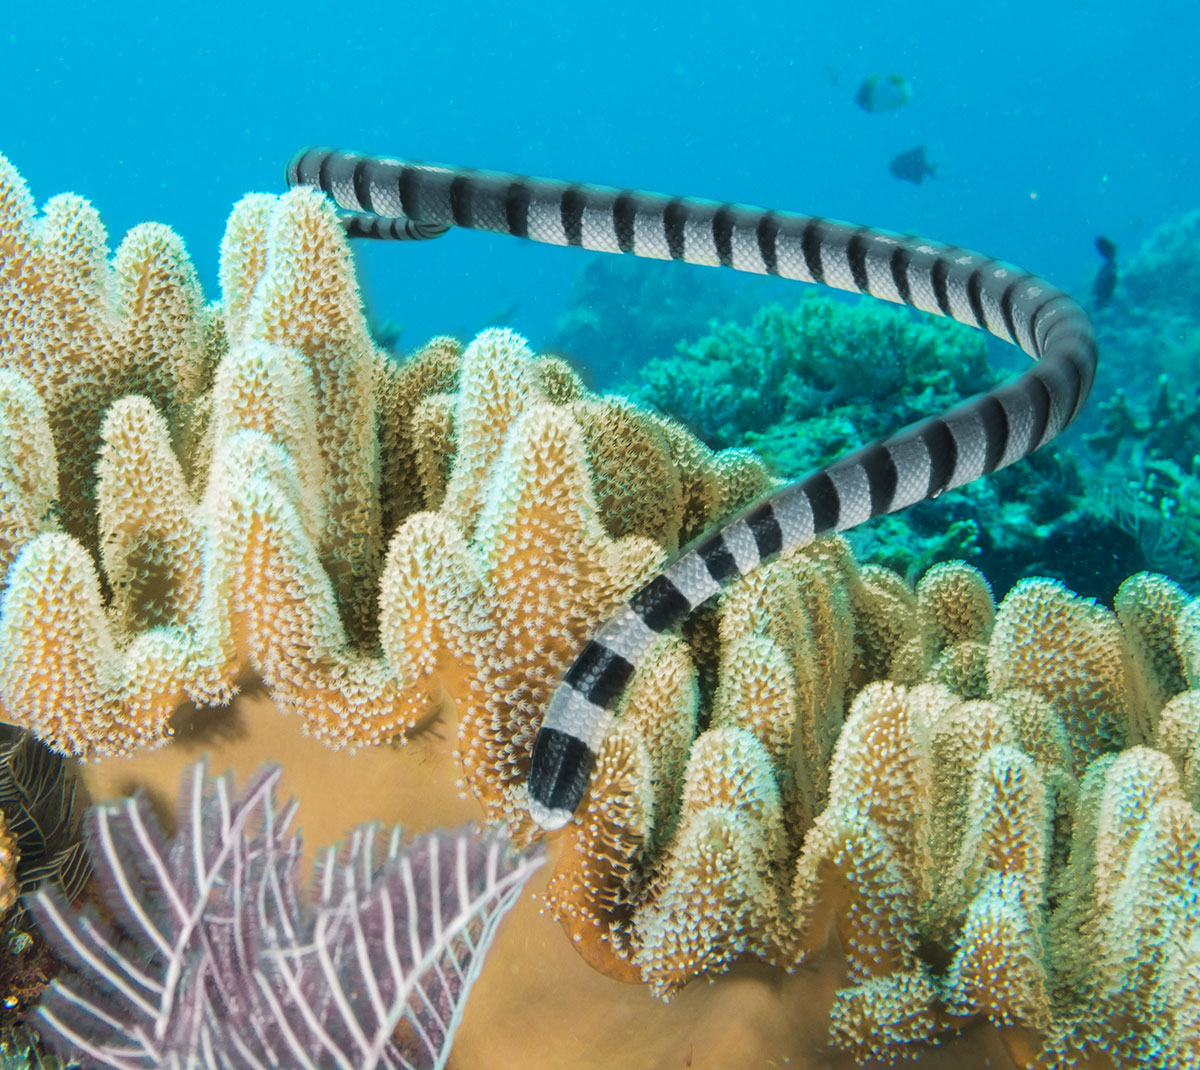 Indonesia, Manado, Bunaken Island, Diving, Sea Snake